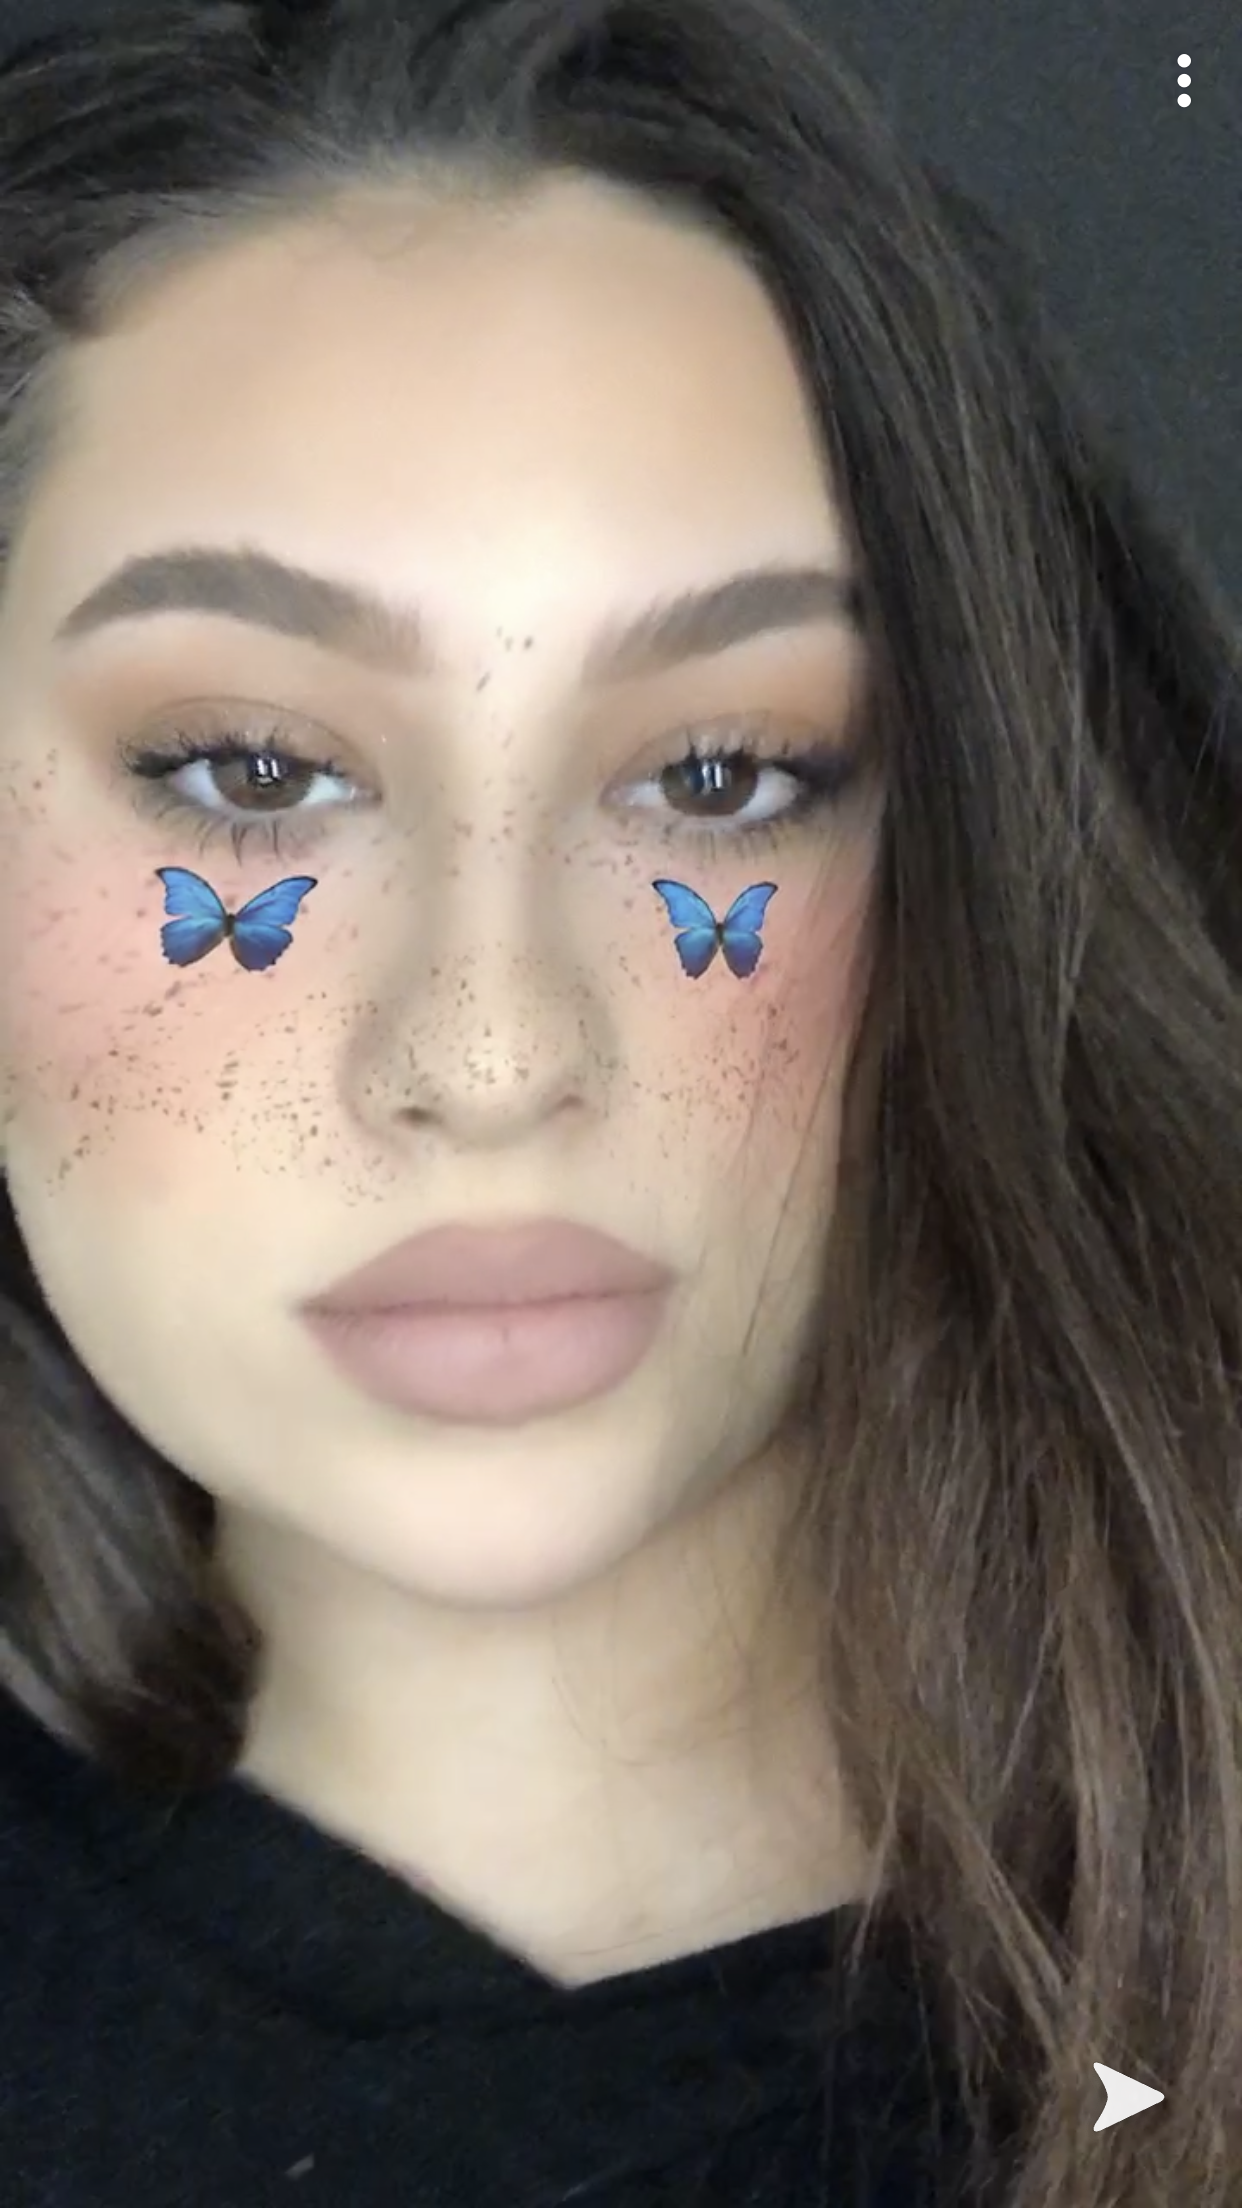 IG Josephine.Perso Butterfly makeup, Snapchat filter